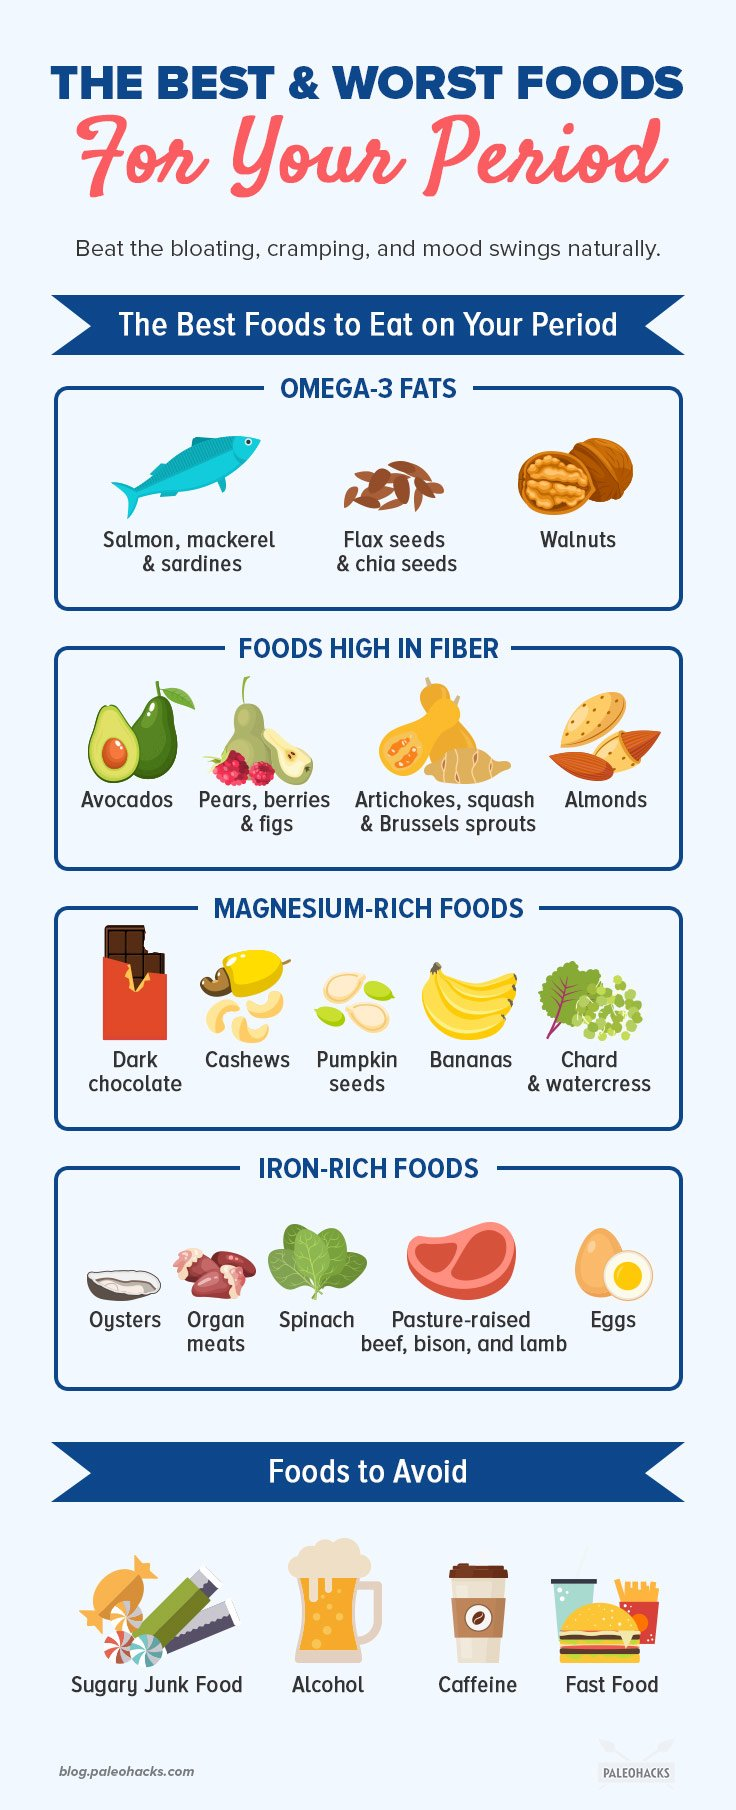 The-Best-Worst-Foods-for-Your-Period-infog.jpg